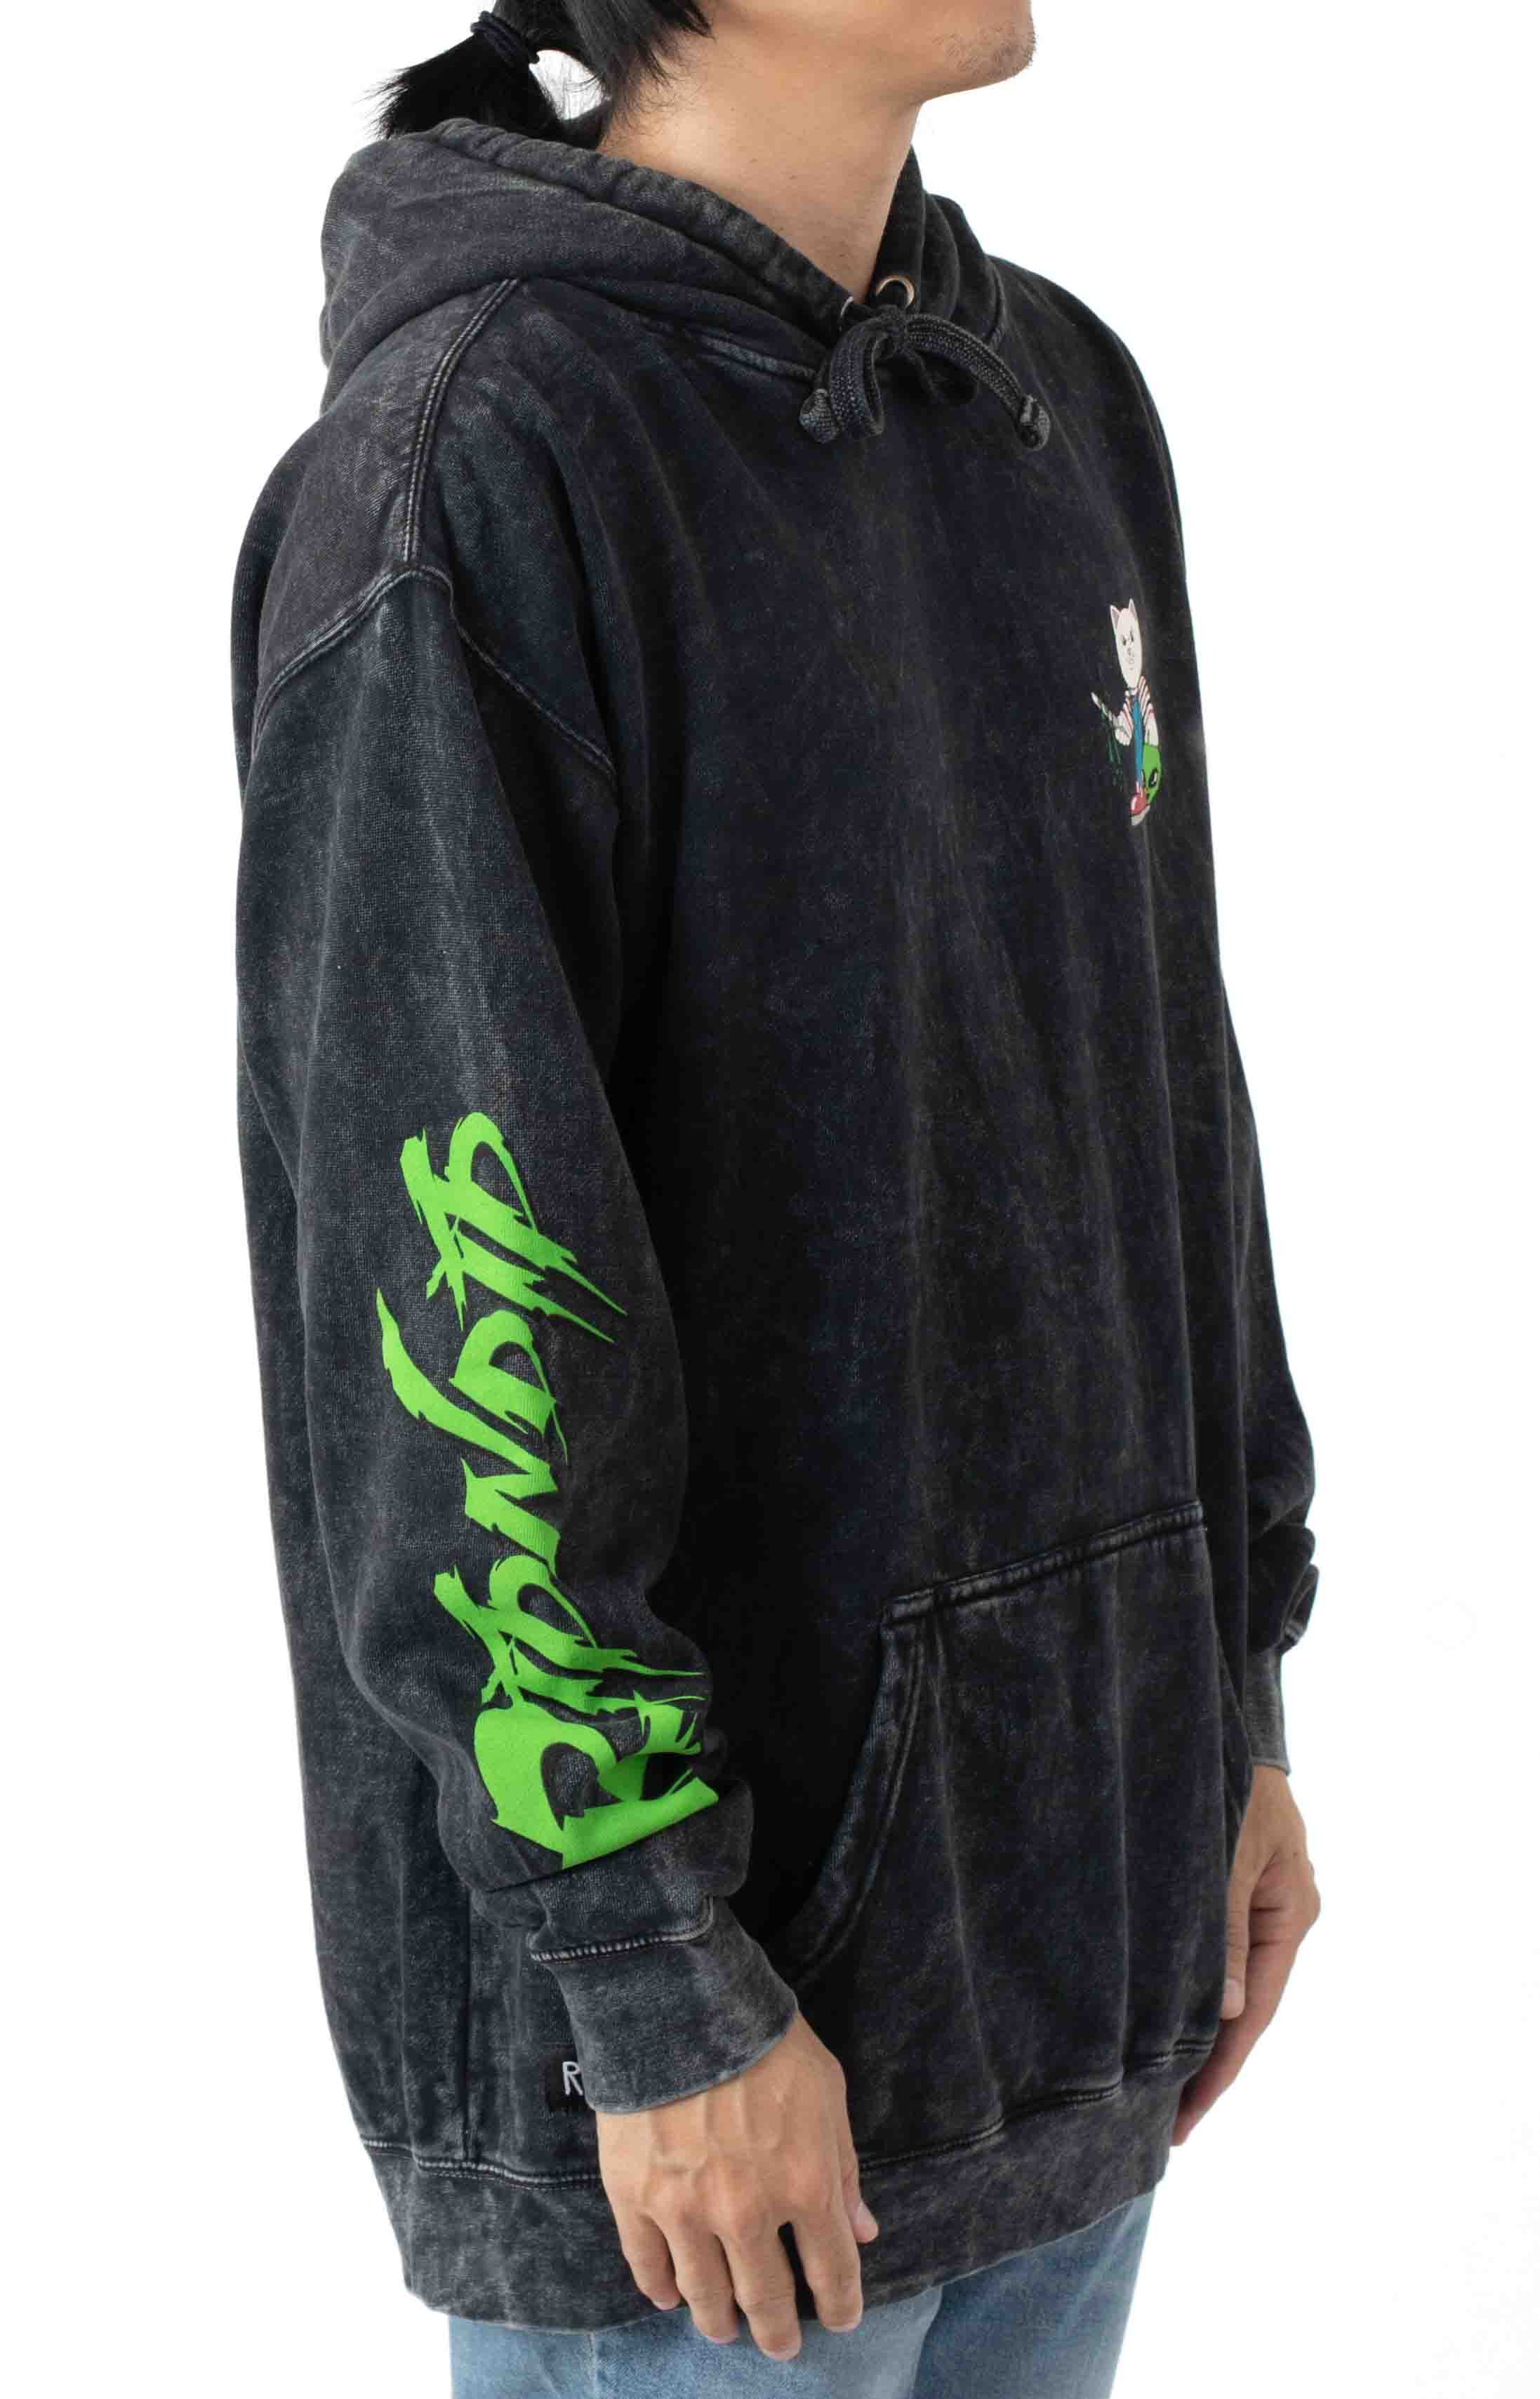 Childs Play Pullover Hoodie - Black Mineral Wash  3